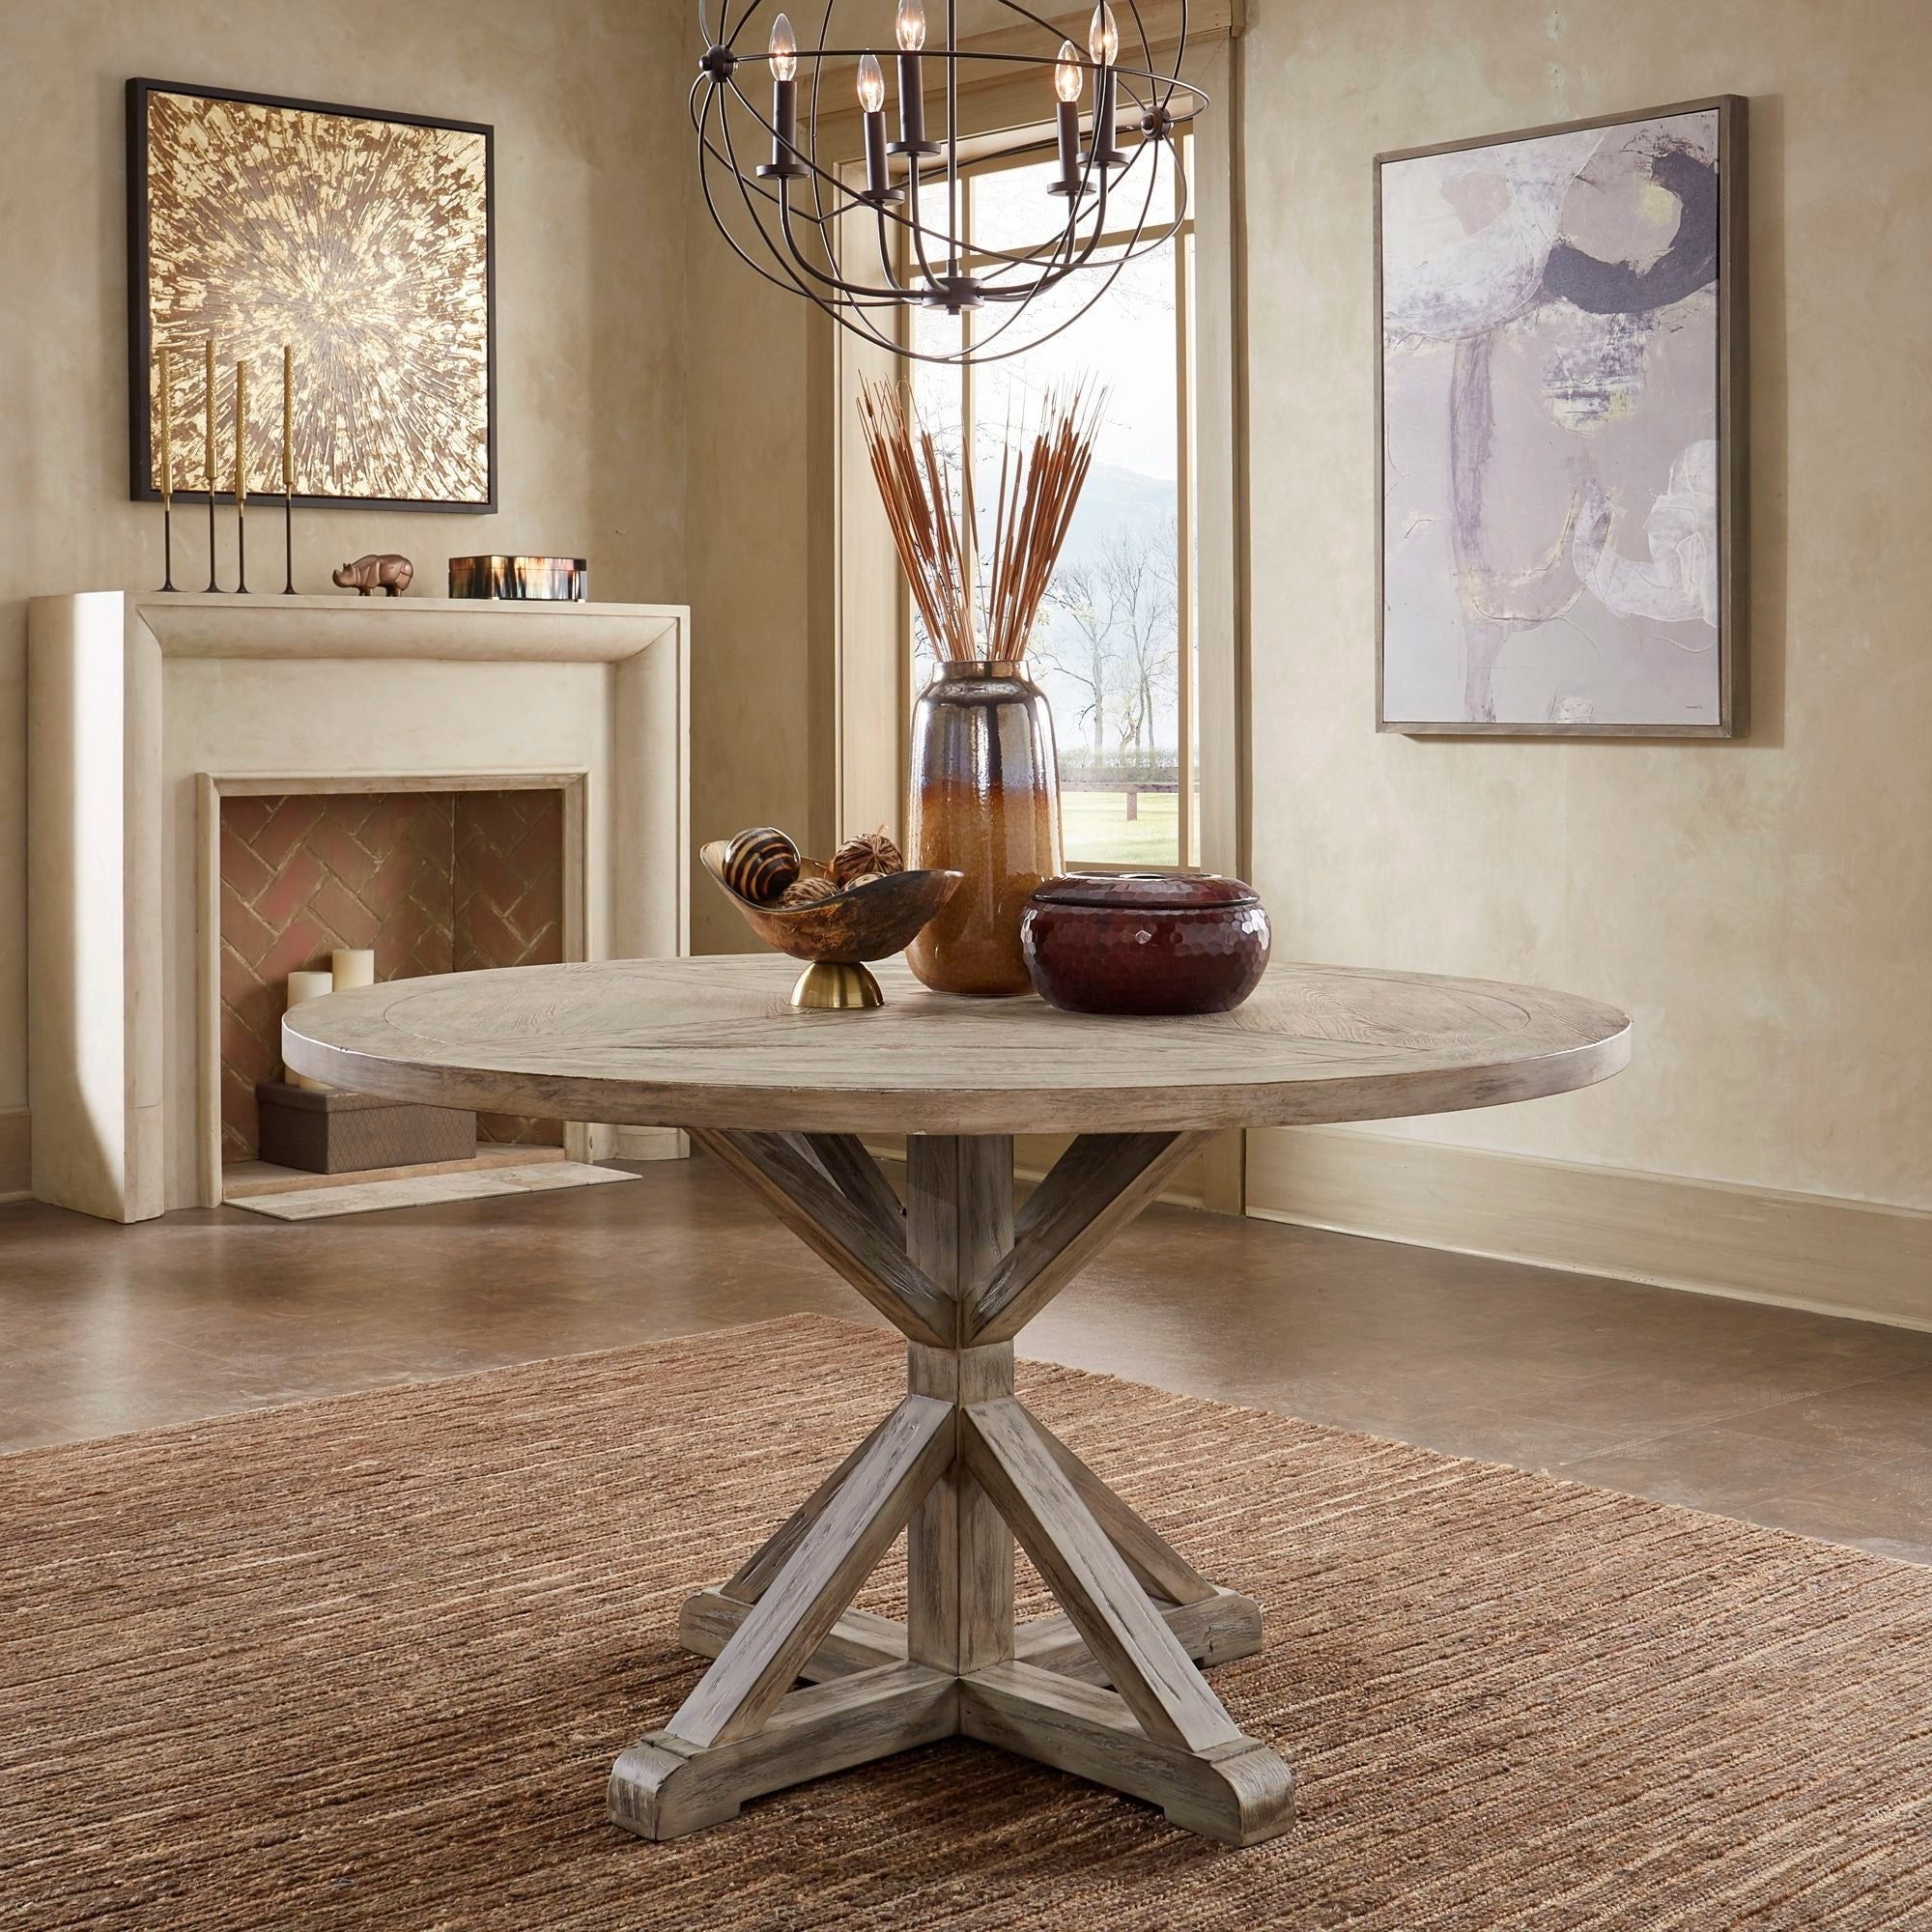 Newest Benchwright Antique Grey Oak Round Dining Tableinspire Q Artisan in Blackened Oak Benchwright Dining Tables